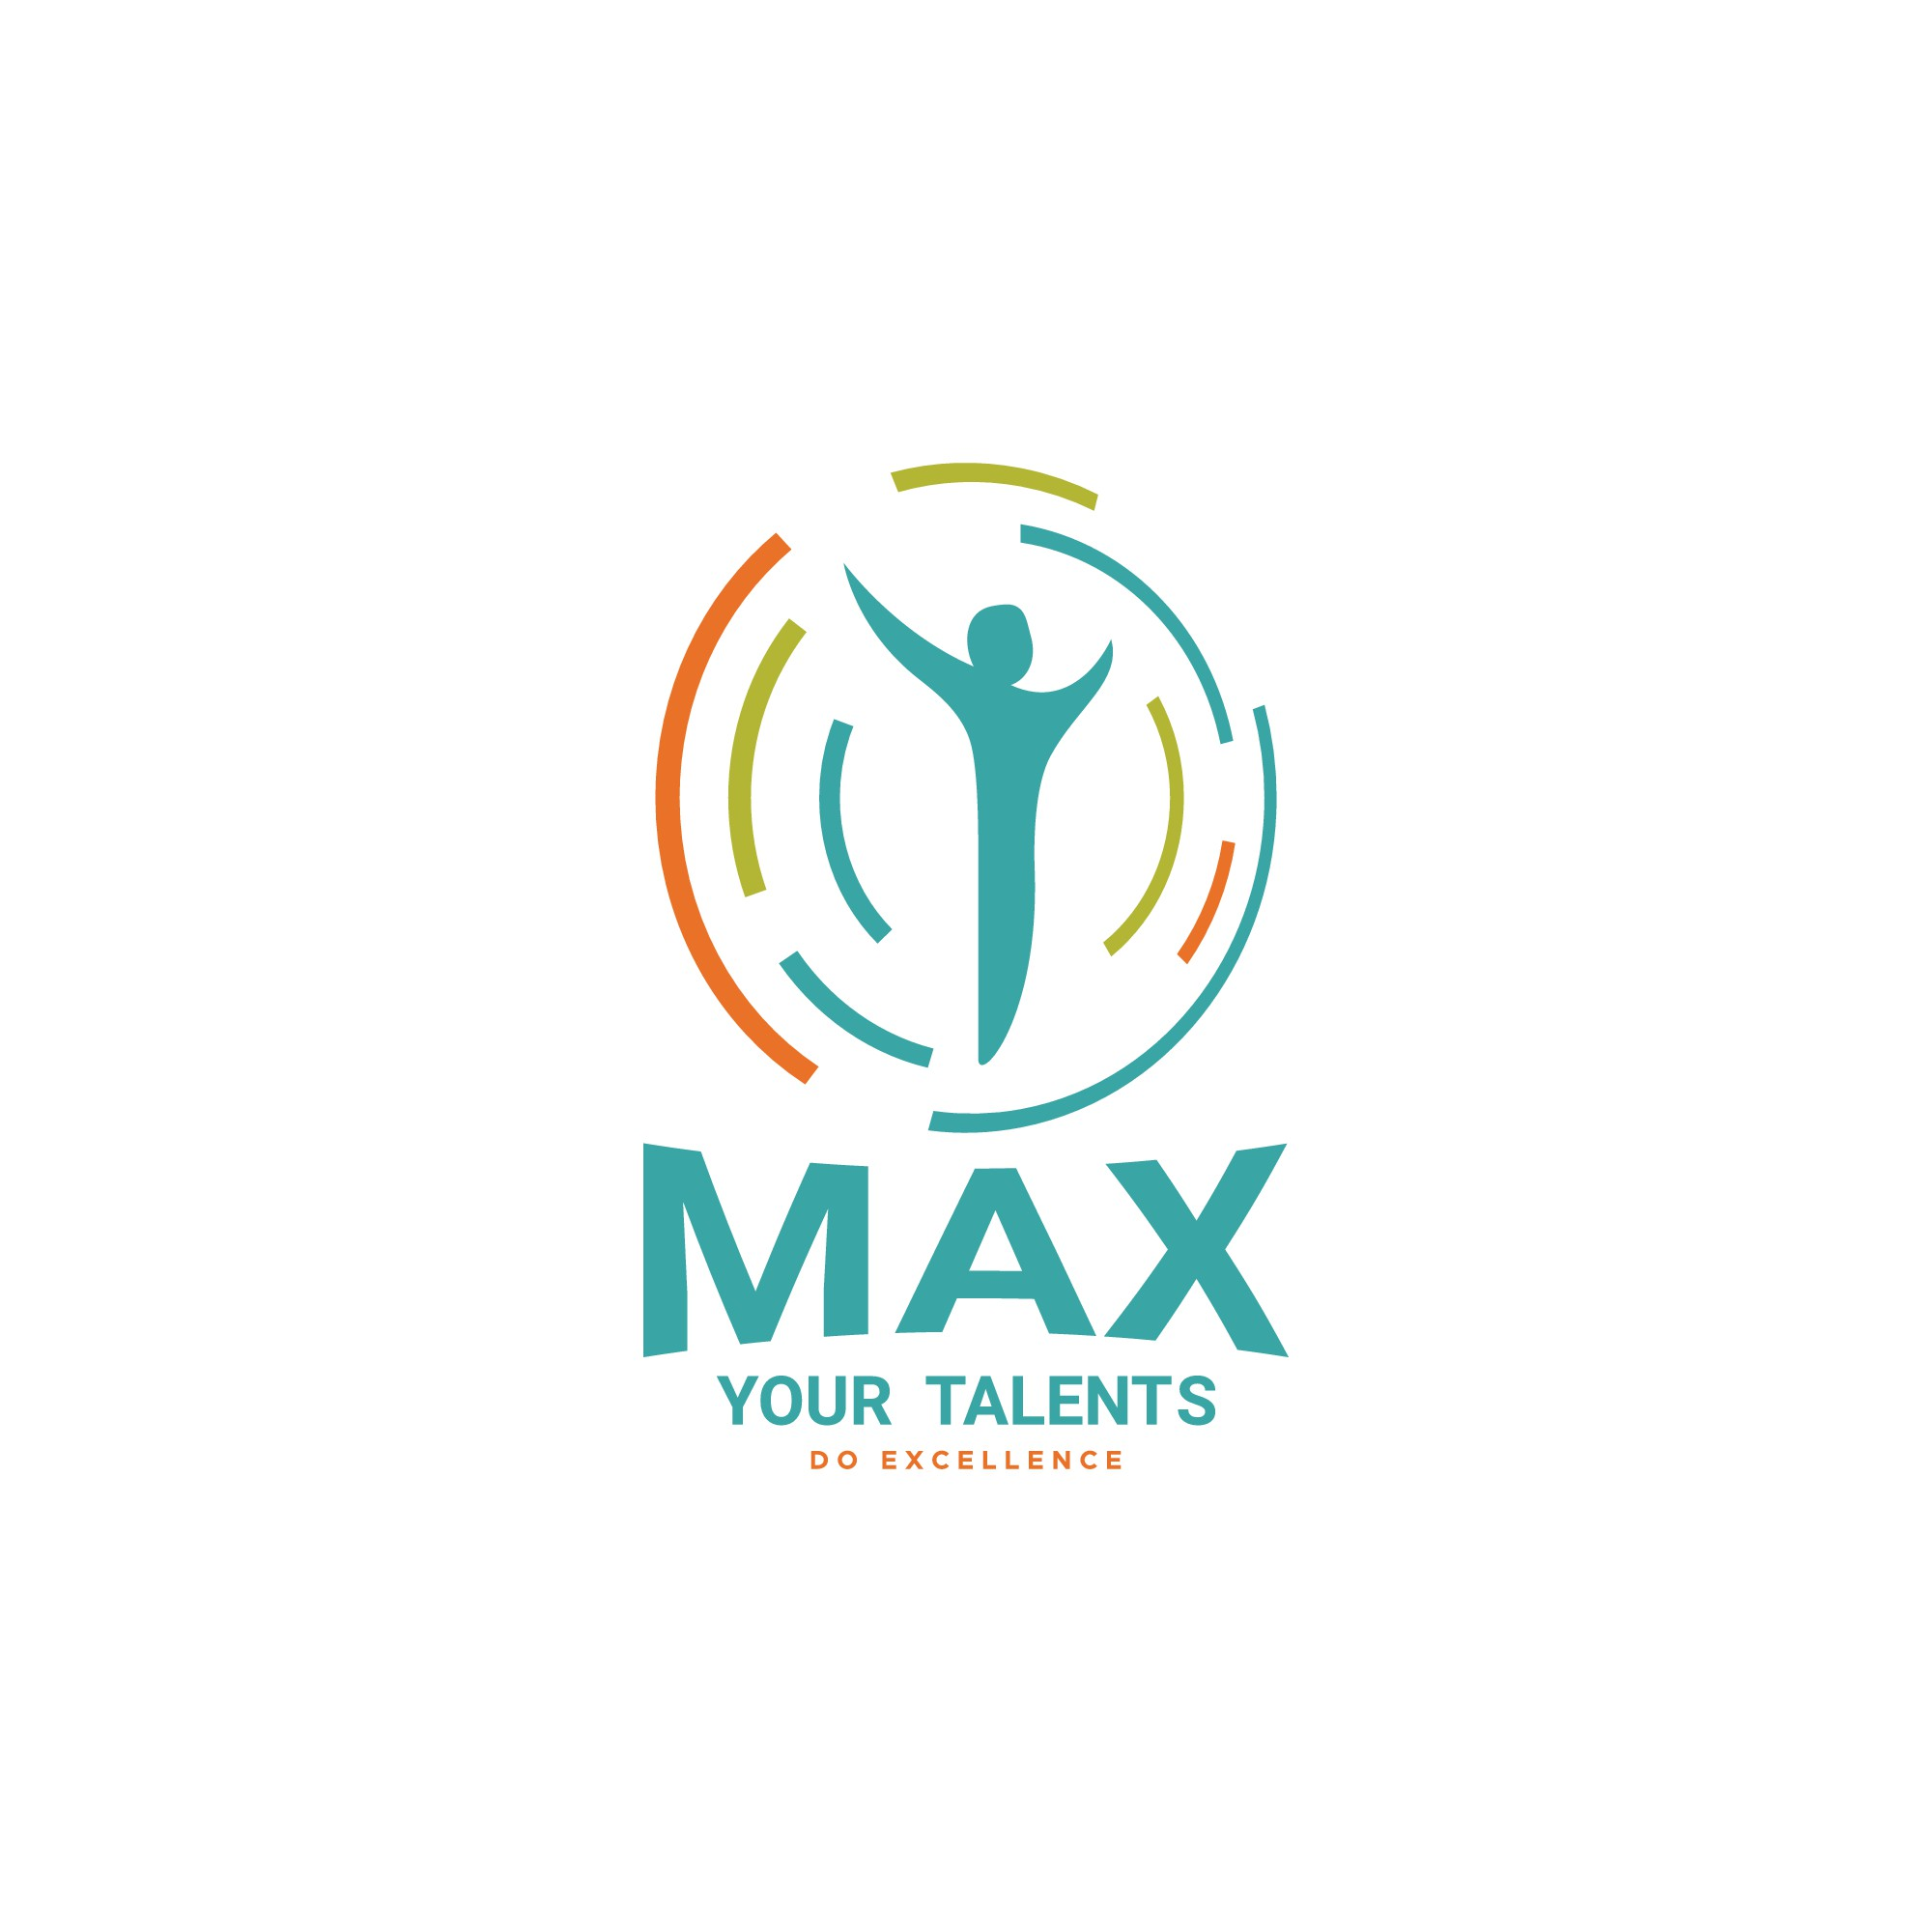 Max Your Talents need powerful new logo